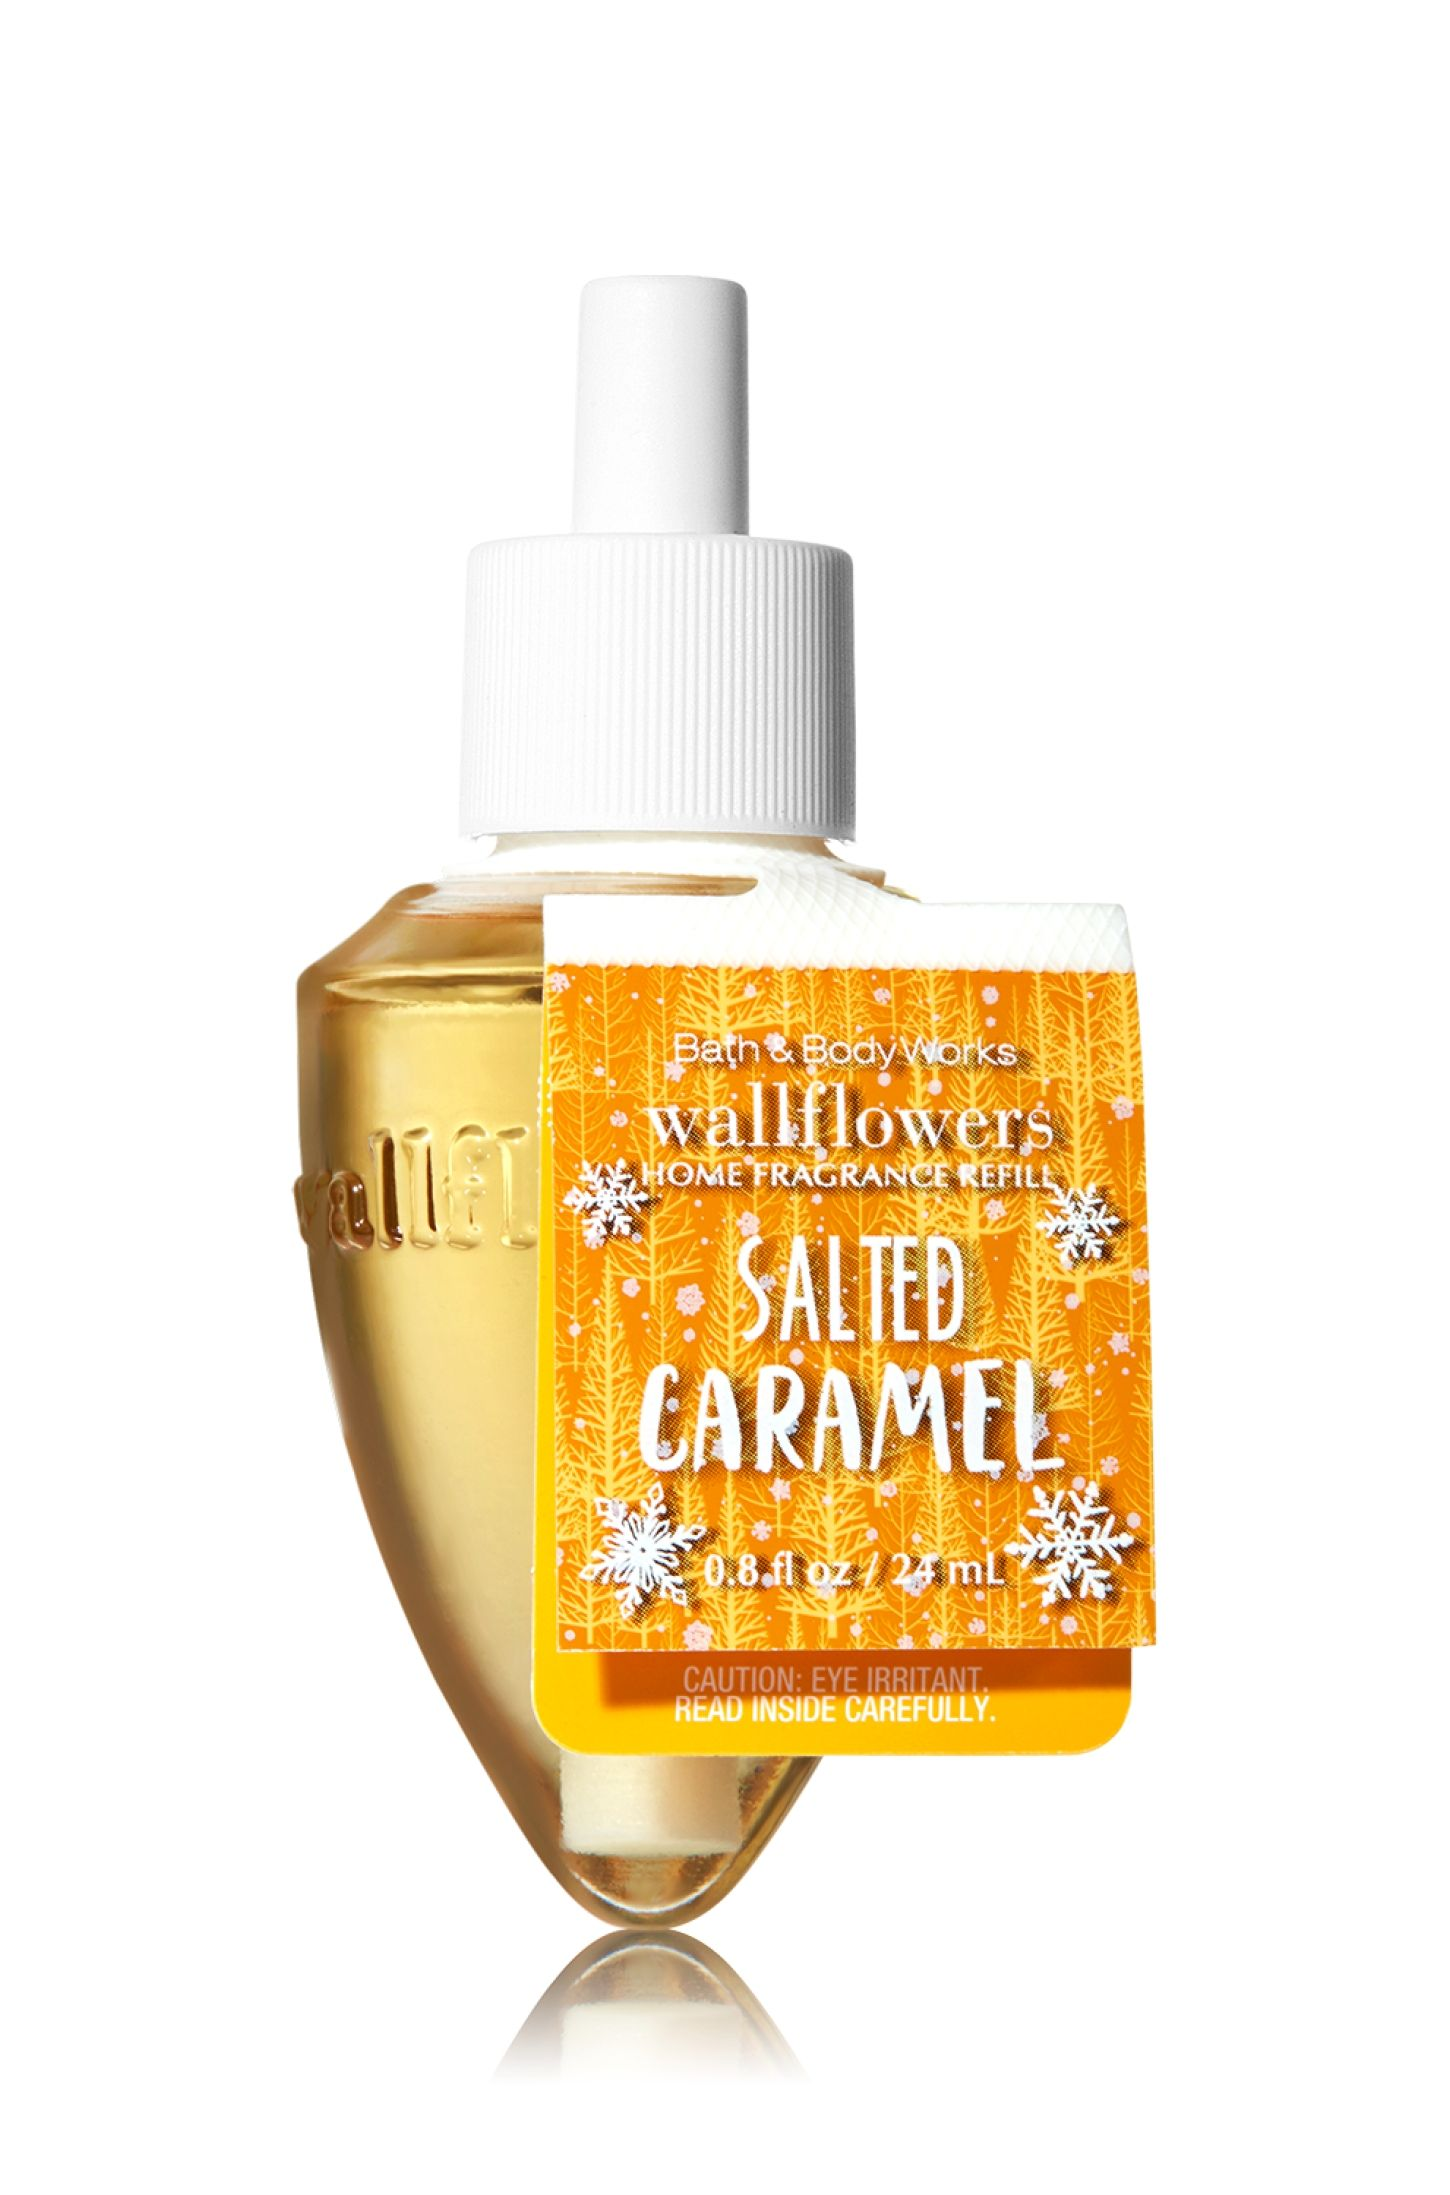 Salted Caramel Wallflowers Fragrance Refill Home Fragrance 1037181 Bath Body Works Bath And Body Works Body Cleanser Bath And Body